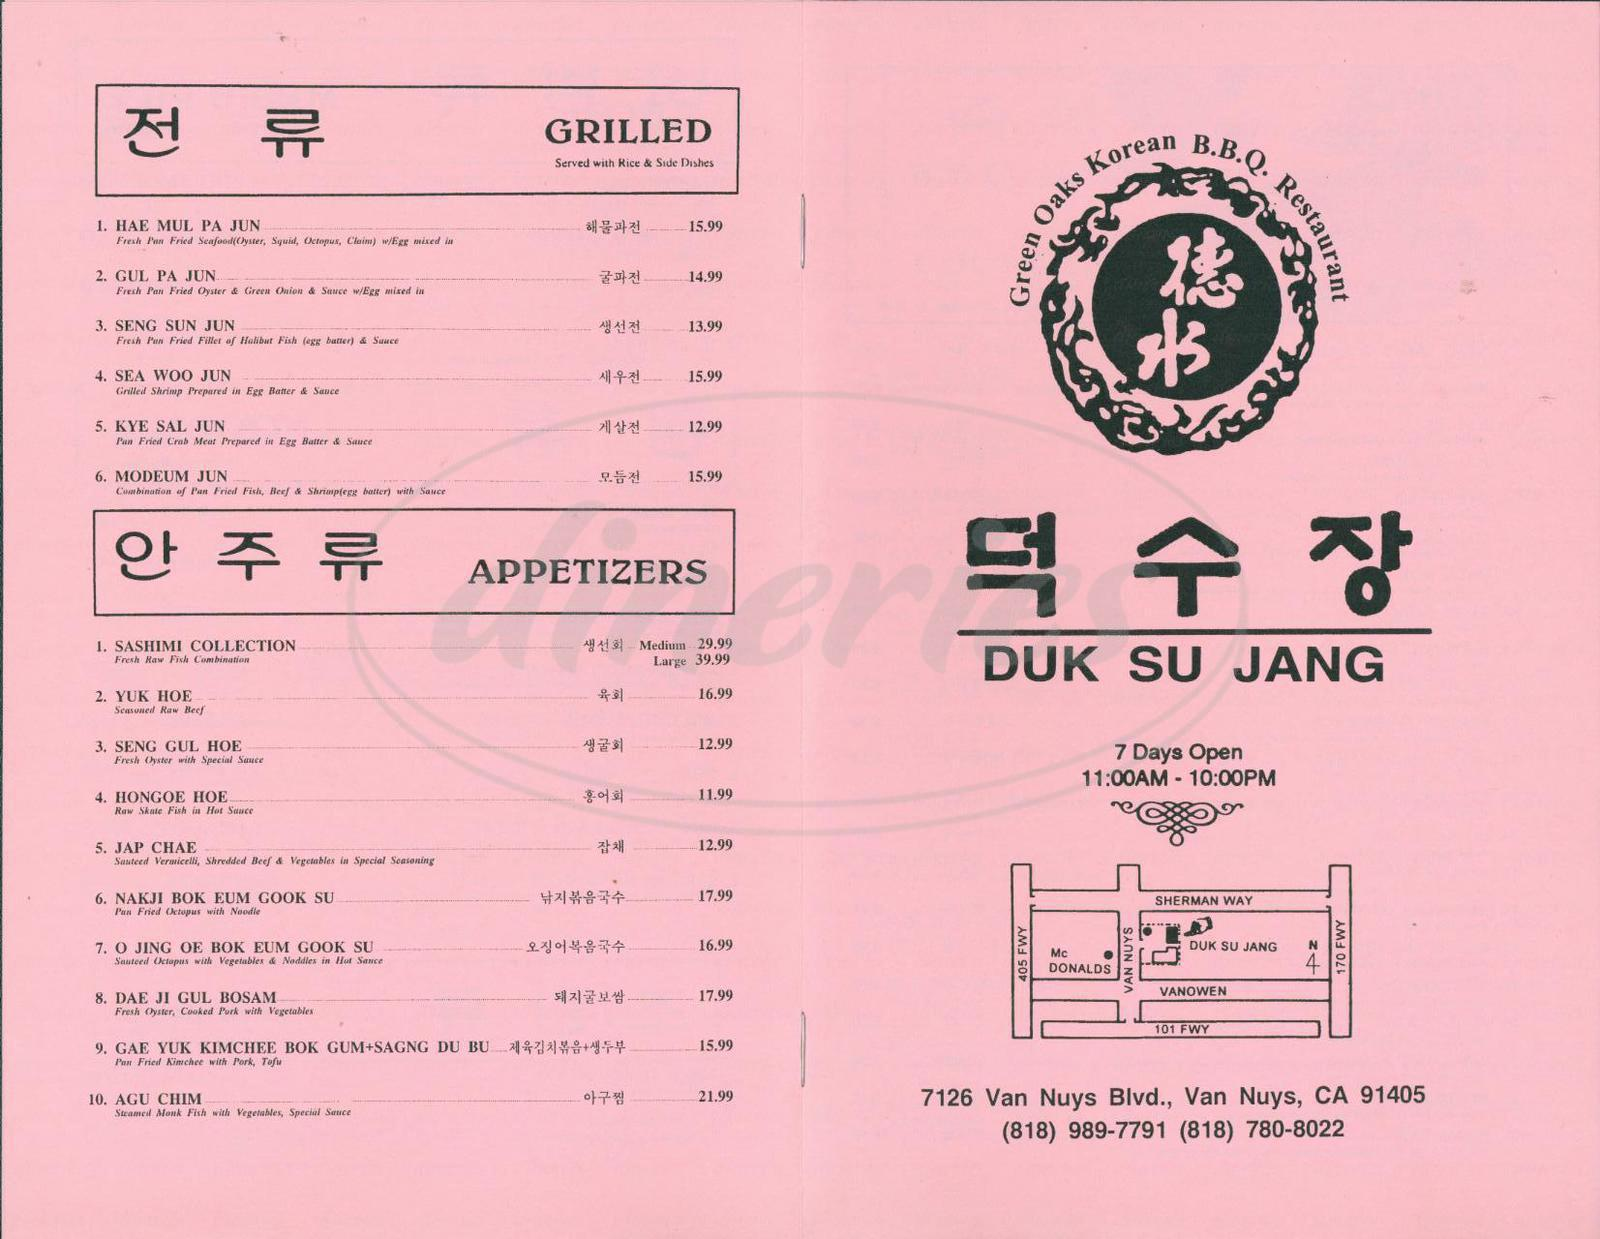 menu for Duk Su Jang